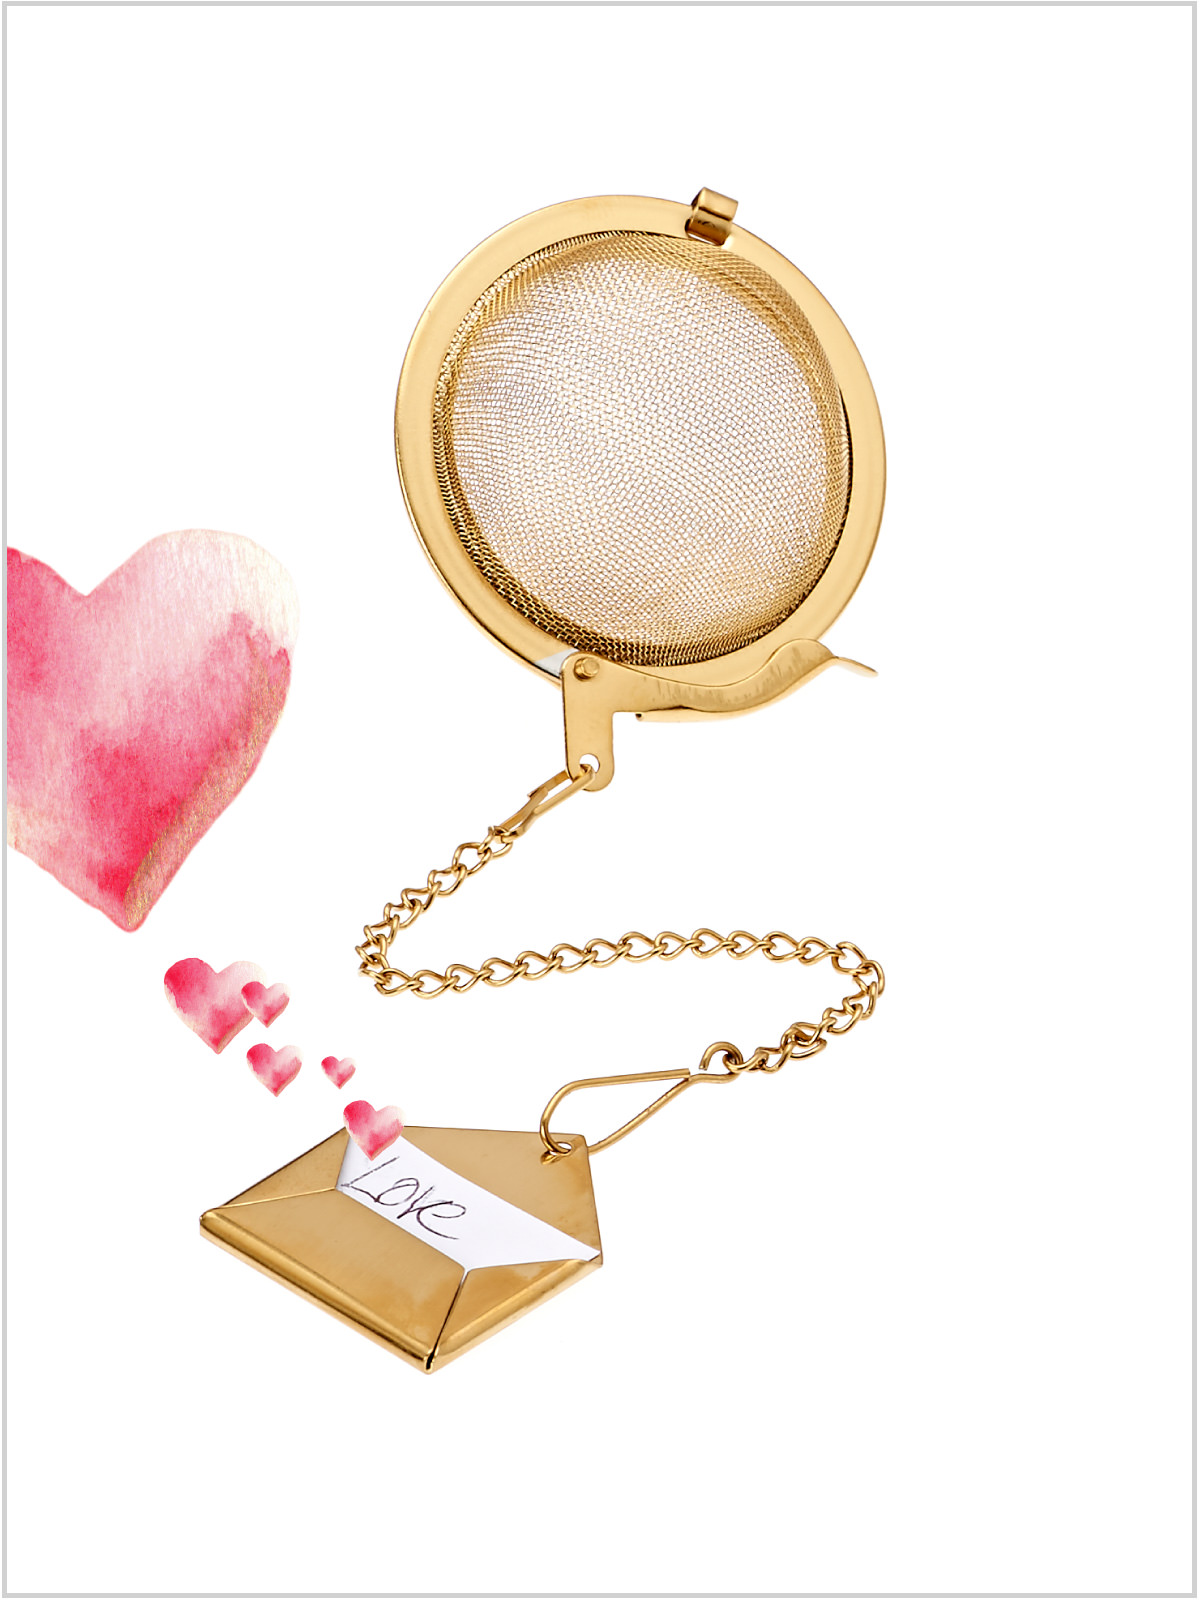 frederickandsophie-lifestyle-laviadelte-tea-accessory-teaball-letter